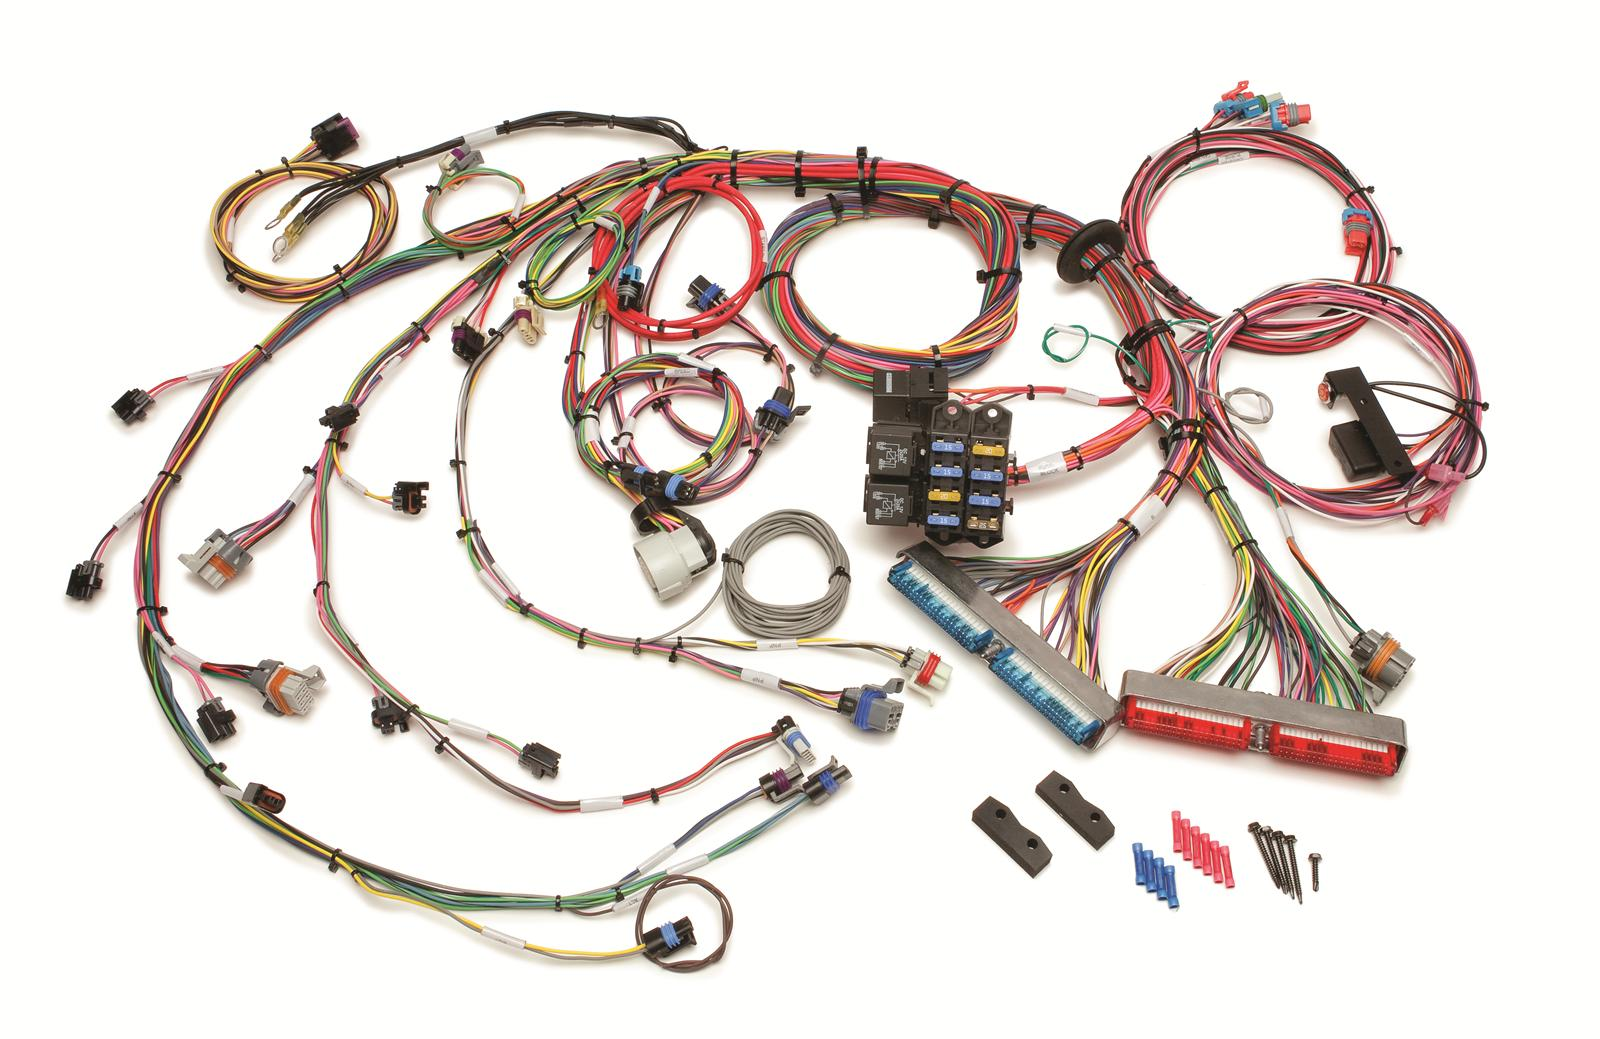 Painless Wiring 60218 Wiring Harness Gen Iii Vortec Chevy